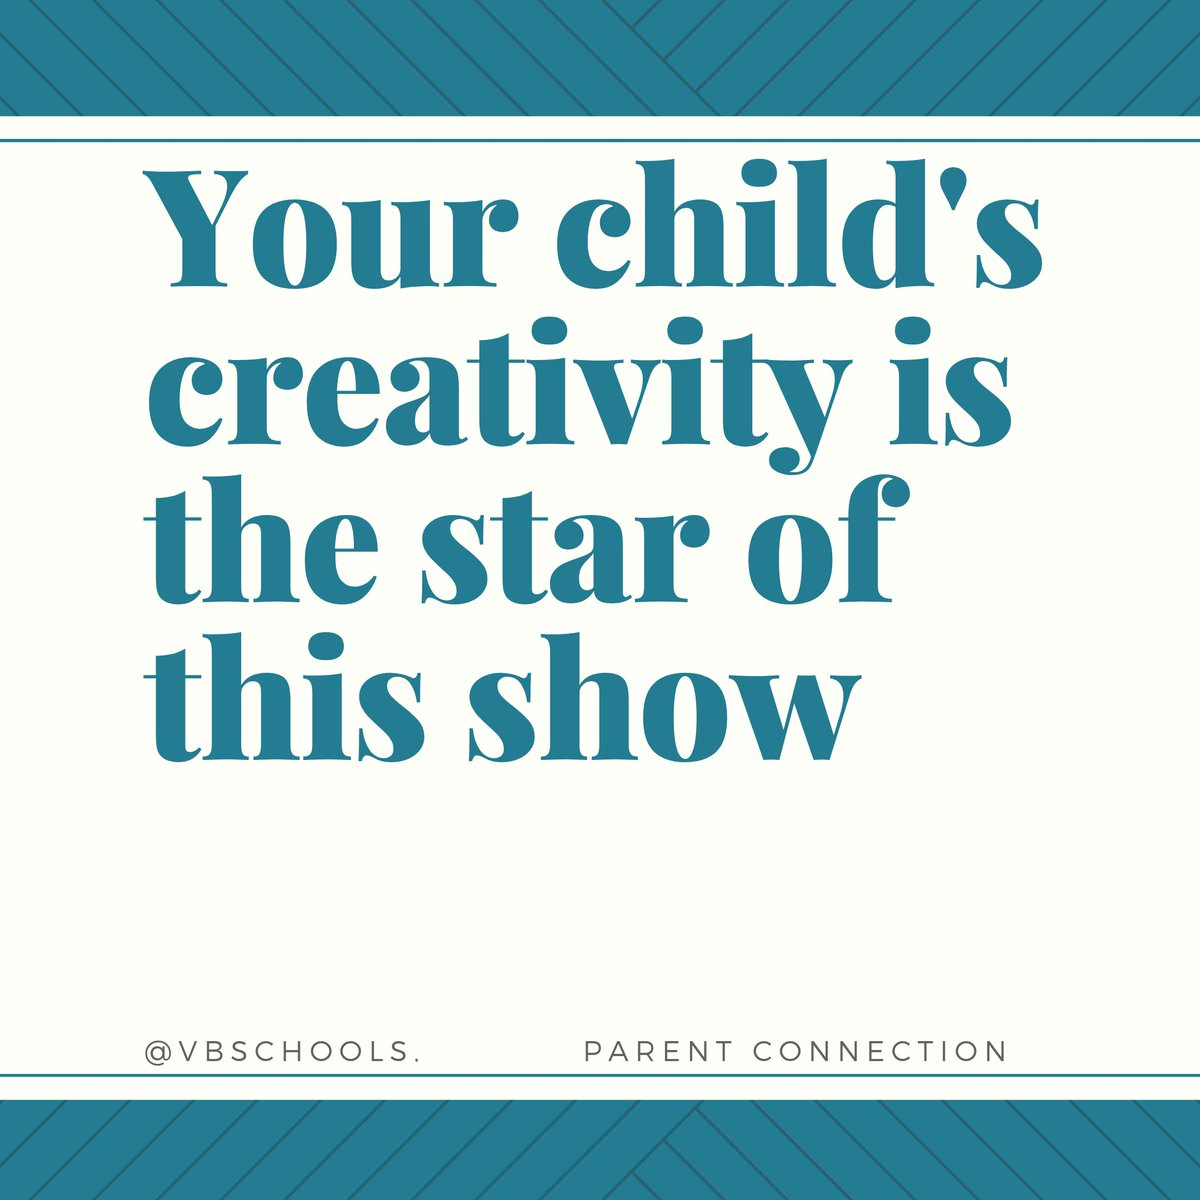 Parent Connection Tip of the Day: Your child's creativity is the star of this show - bit.ly/2Ttlzup